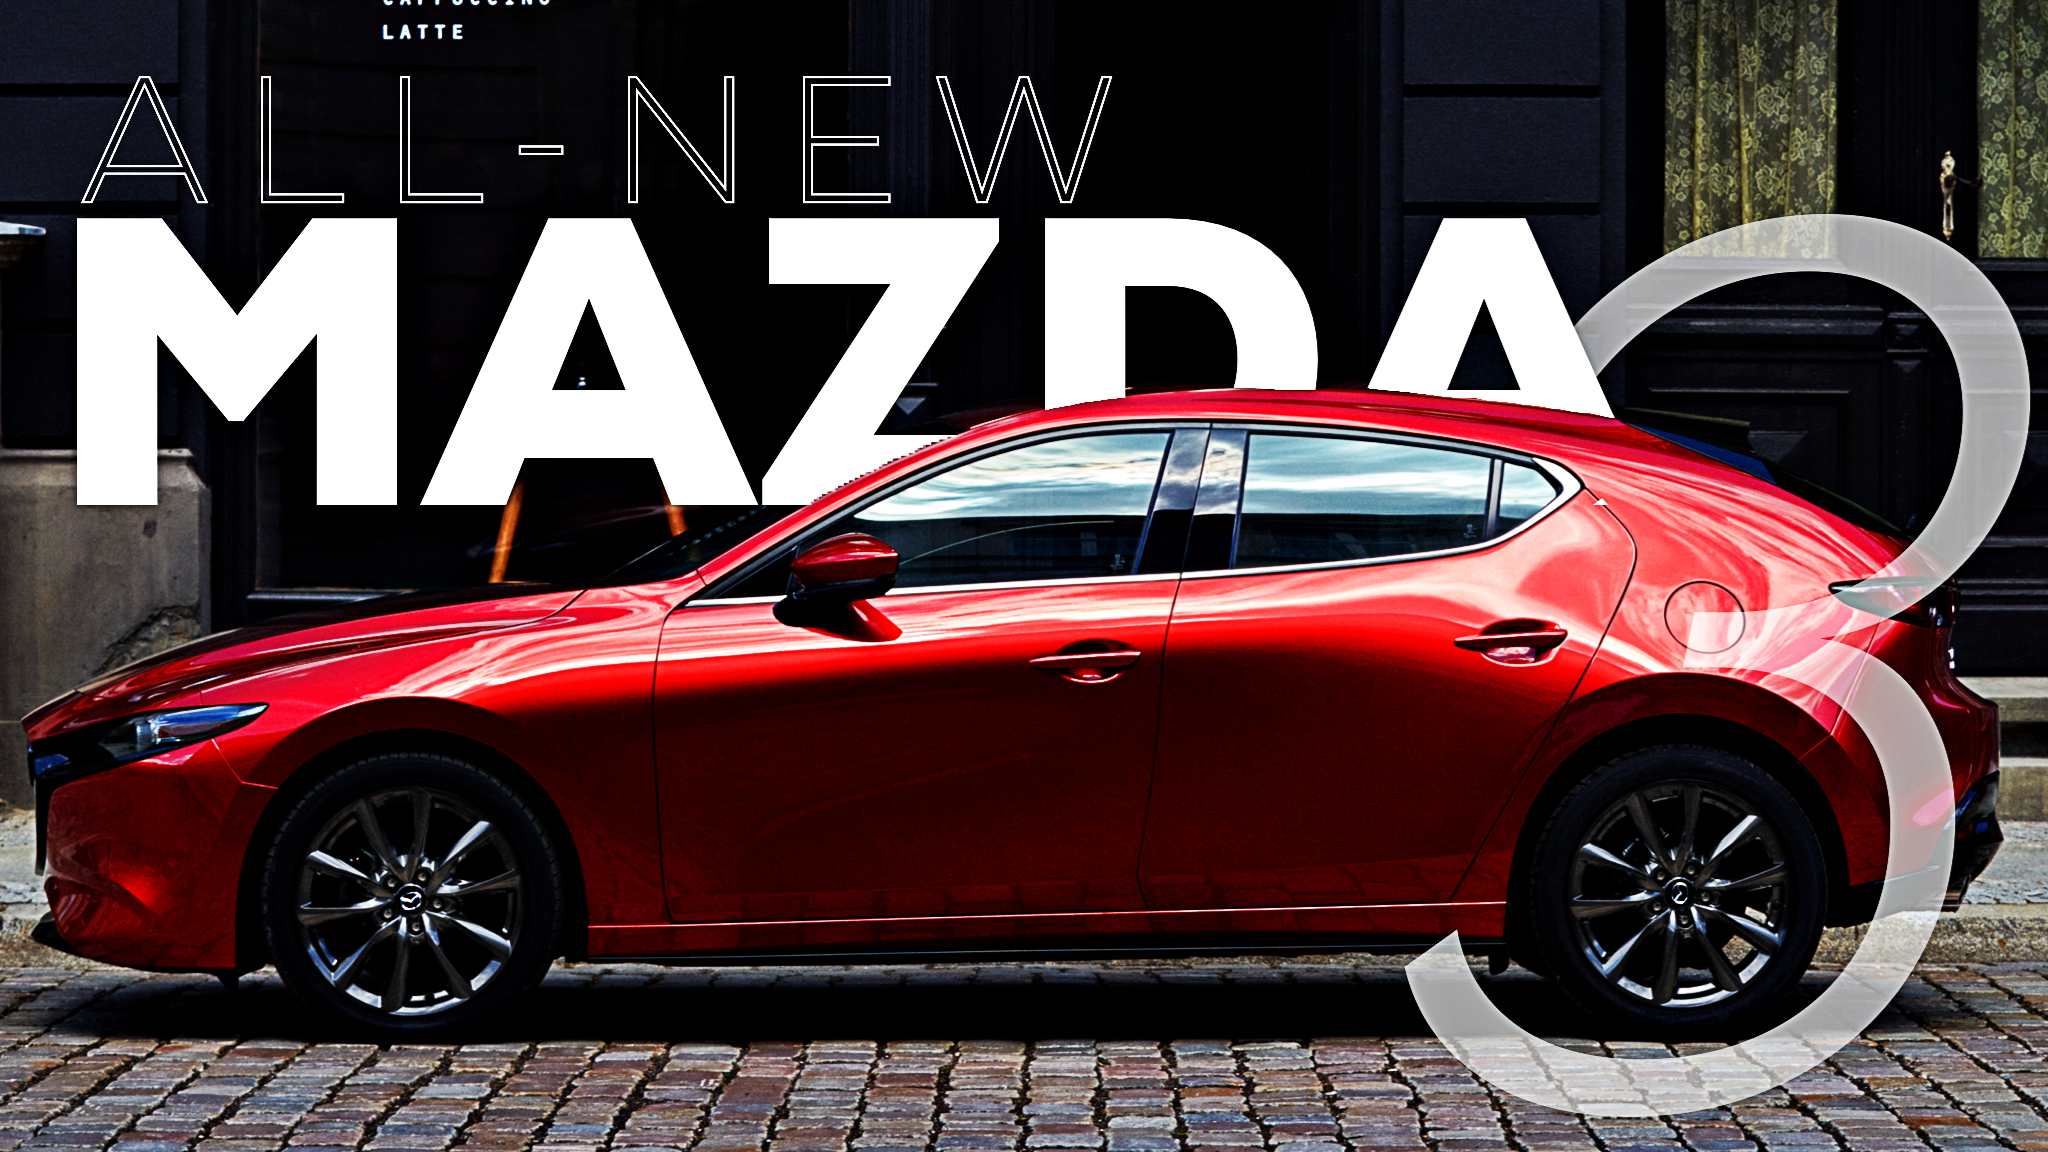 All-New Mazda 3 Breaks Cover: SkyActiv-X, MHEV, Here Q2-2019